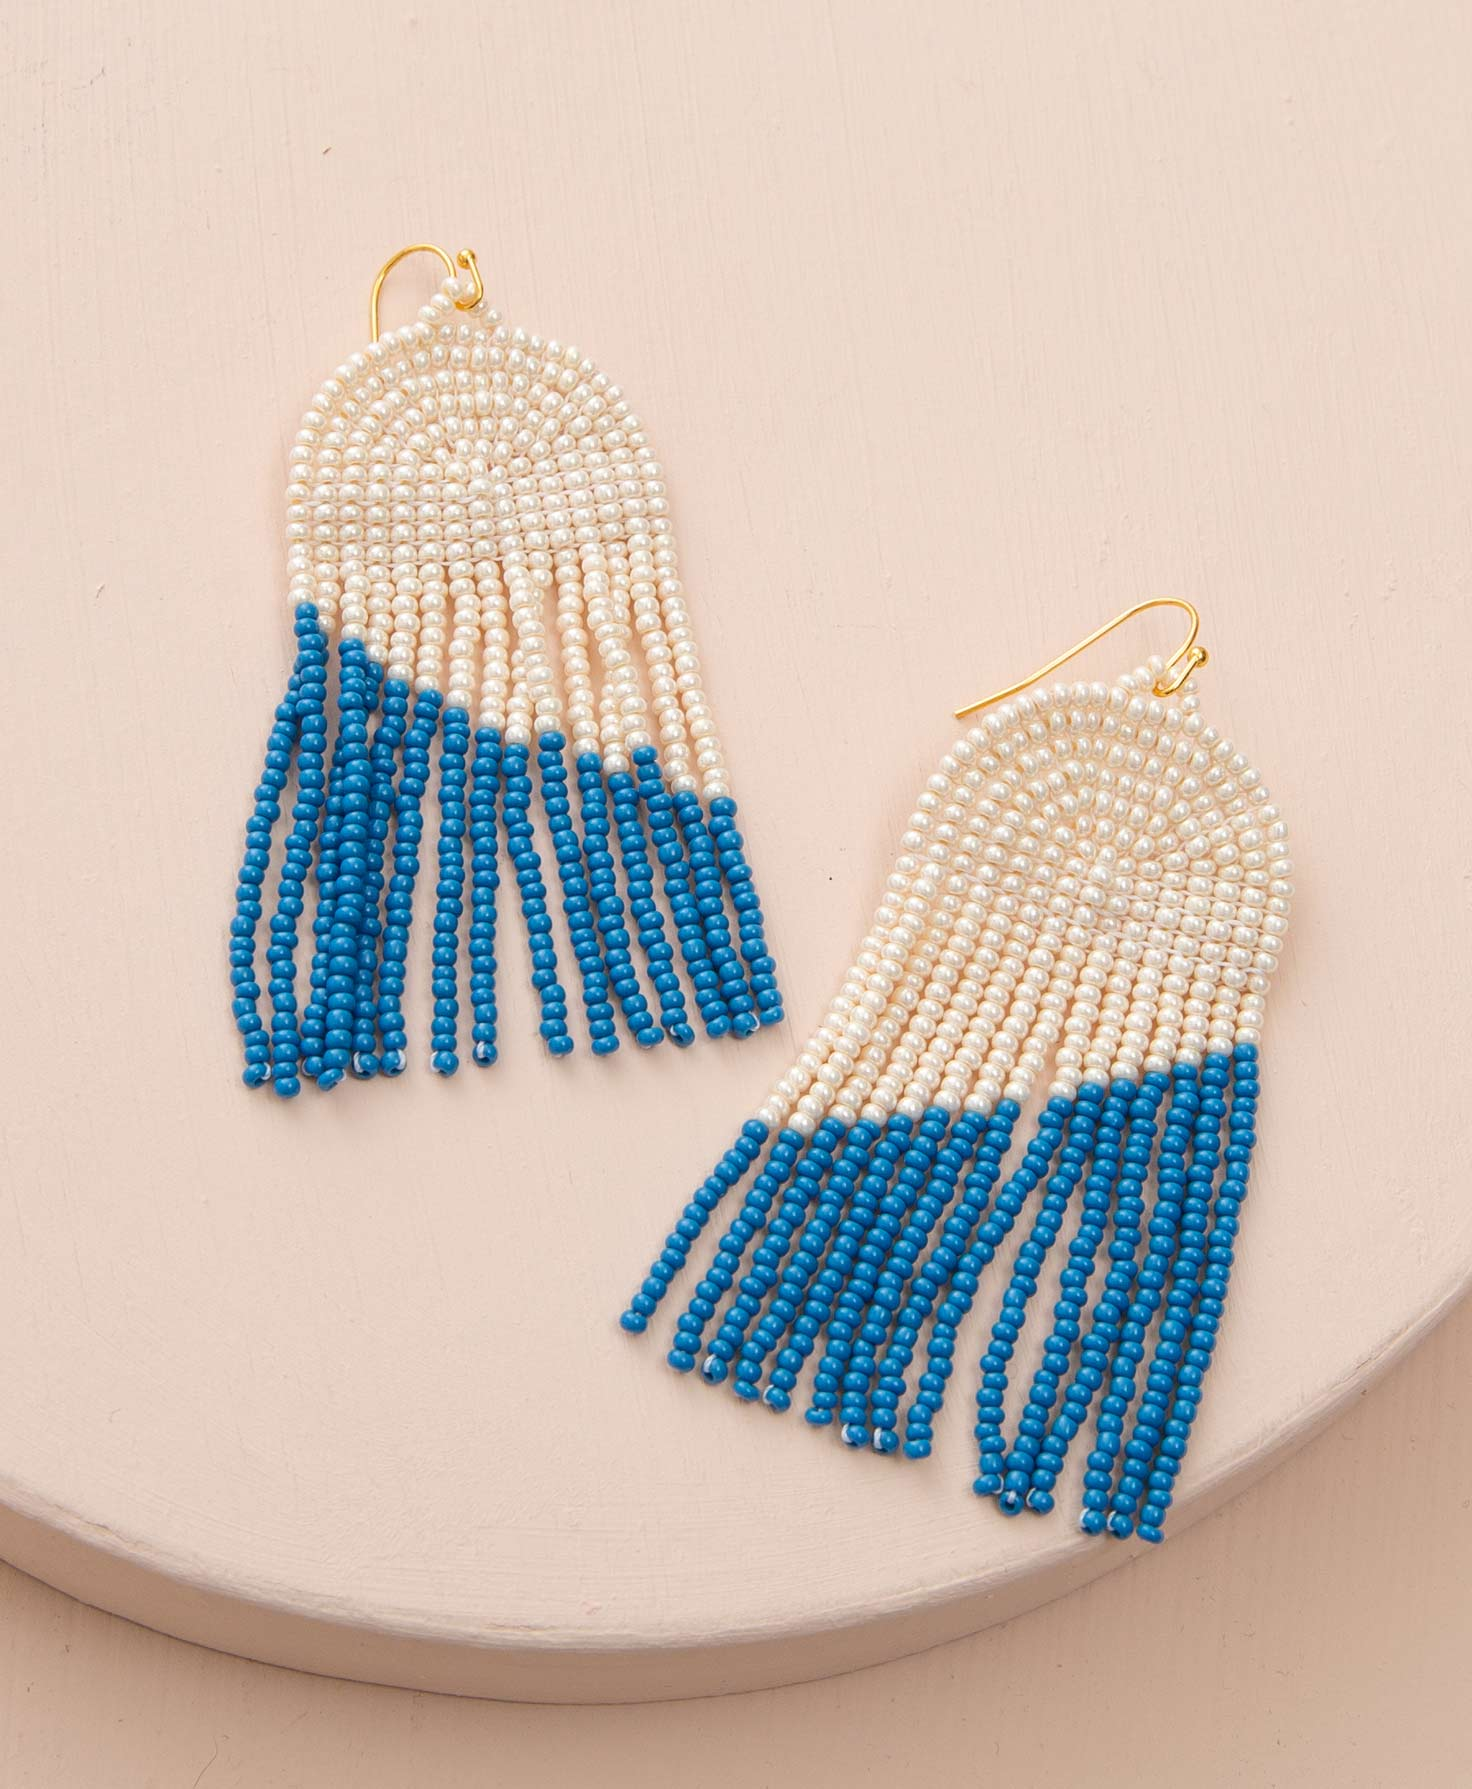 The Ensign Earrings sit on a cream-colored background. They have gold ear wires and are composed of a chandelier of glass beads. At the top of the earrings is an arch made of glossy white glass beads. Hanging from this is a fringe of cream and cobalt blue beads. Each fringe begins with cream beads, then ends in blue beads. The blue beads begin one bead later on each subsequent row of fringe, forming a design that looks like an angled line stretching down and across the fringe.